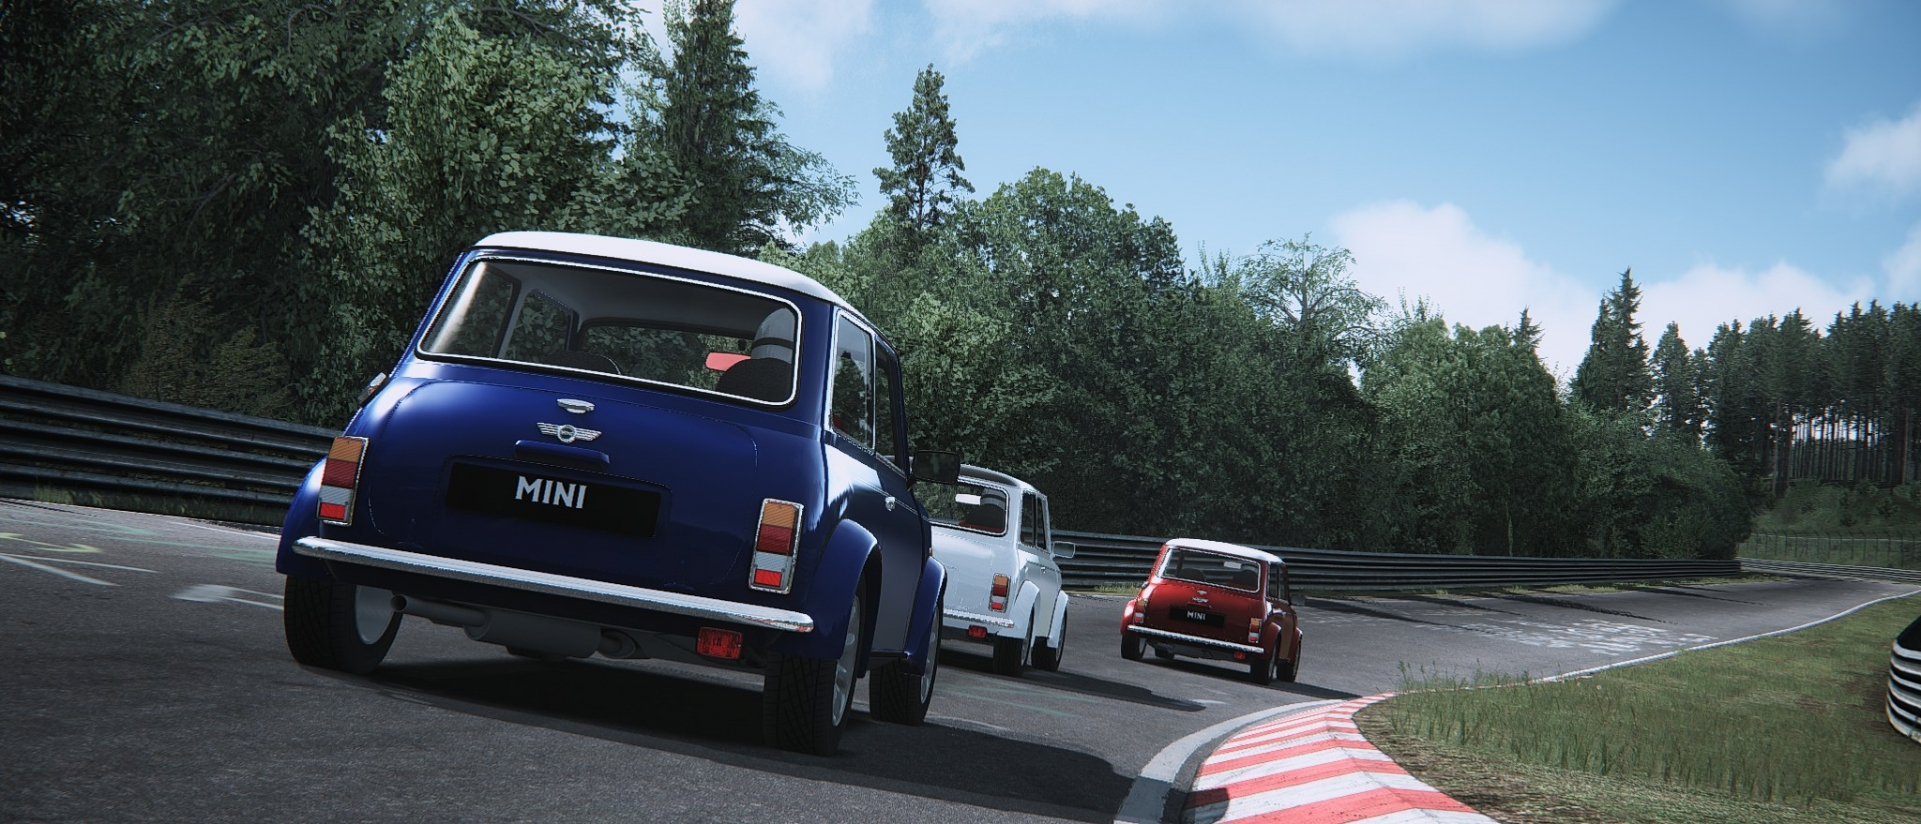 Assetto Corsa - Mini Cooper 1.3 Green Hell 03